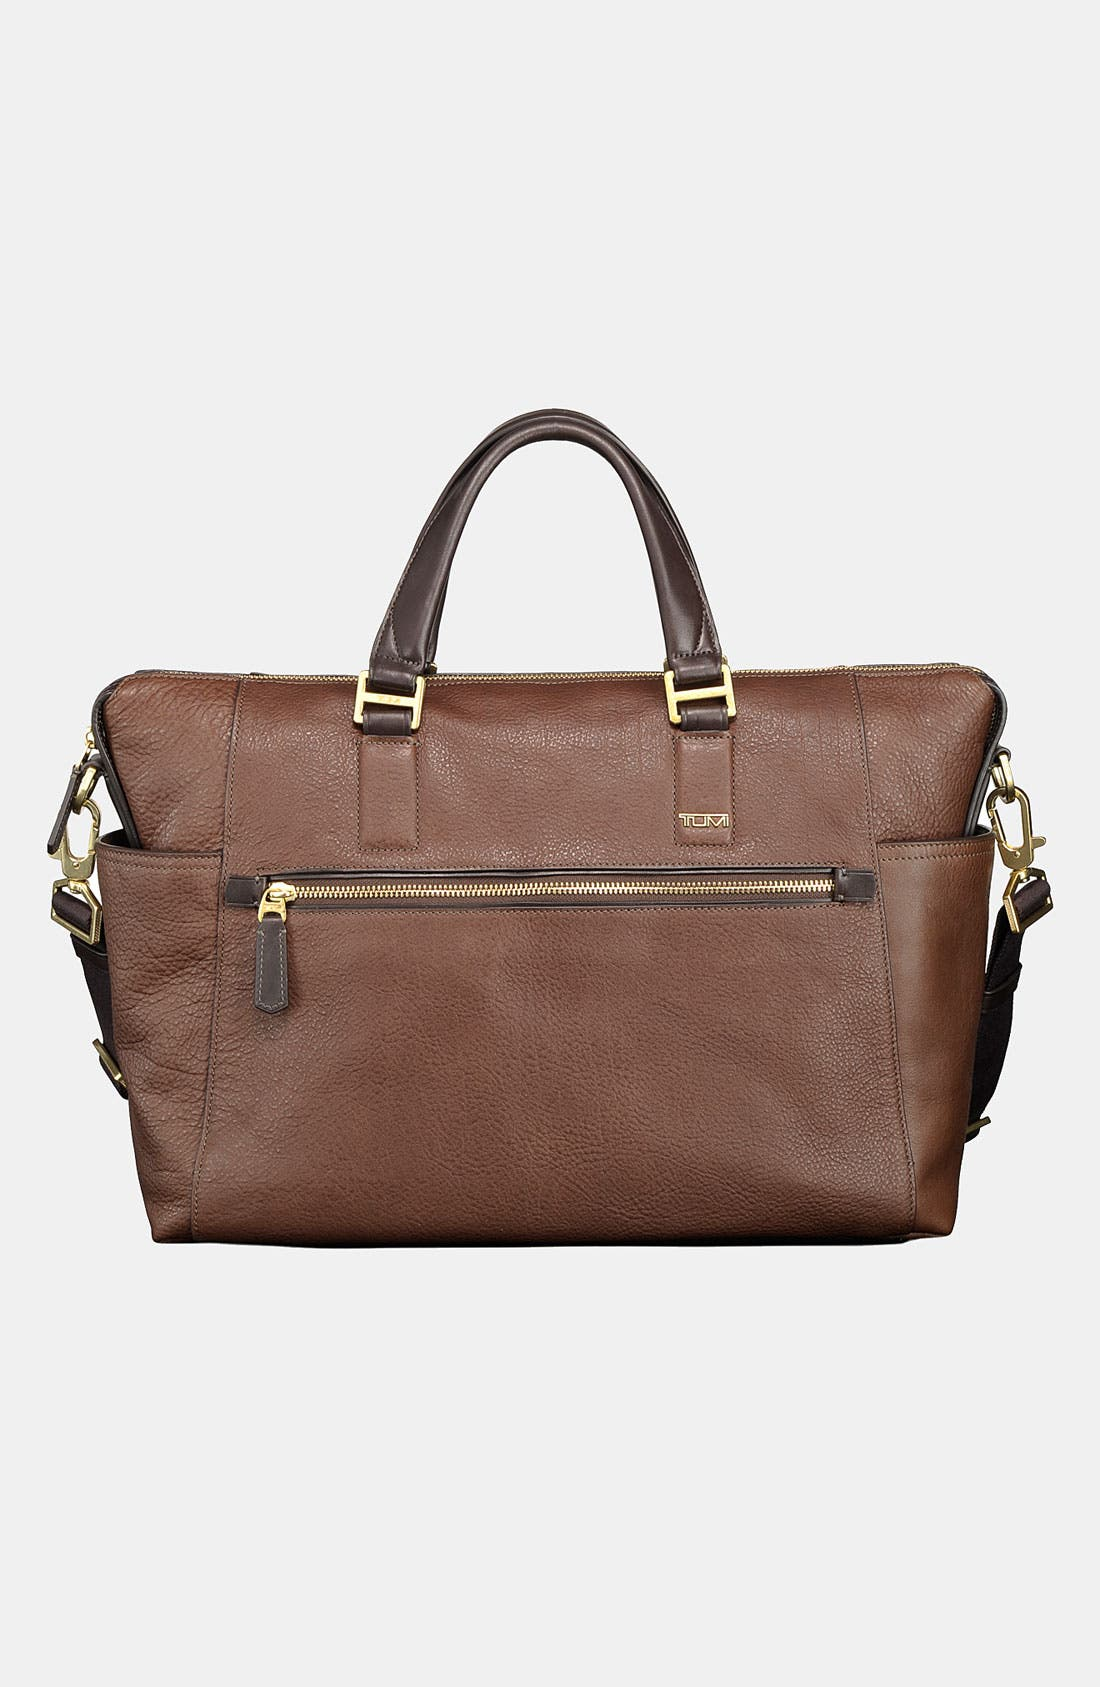 Main Image - Tumi 'Beacon Hill Boylston' Tote